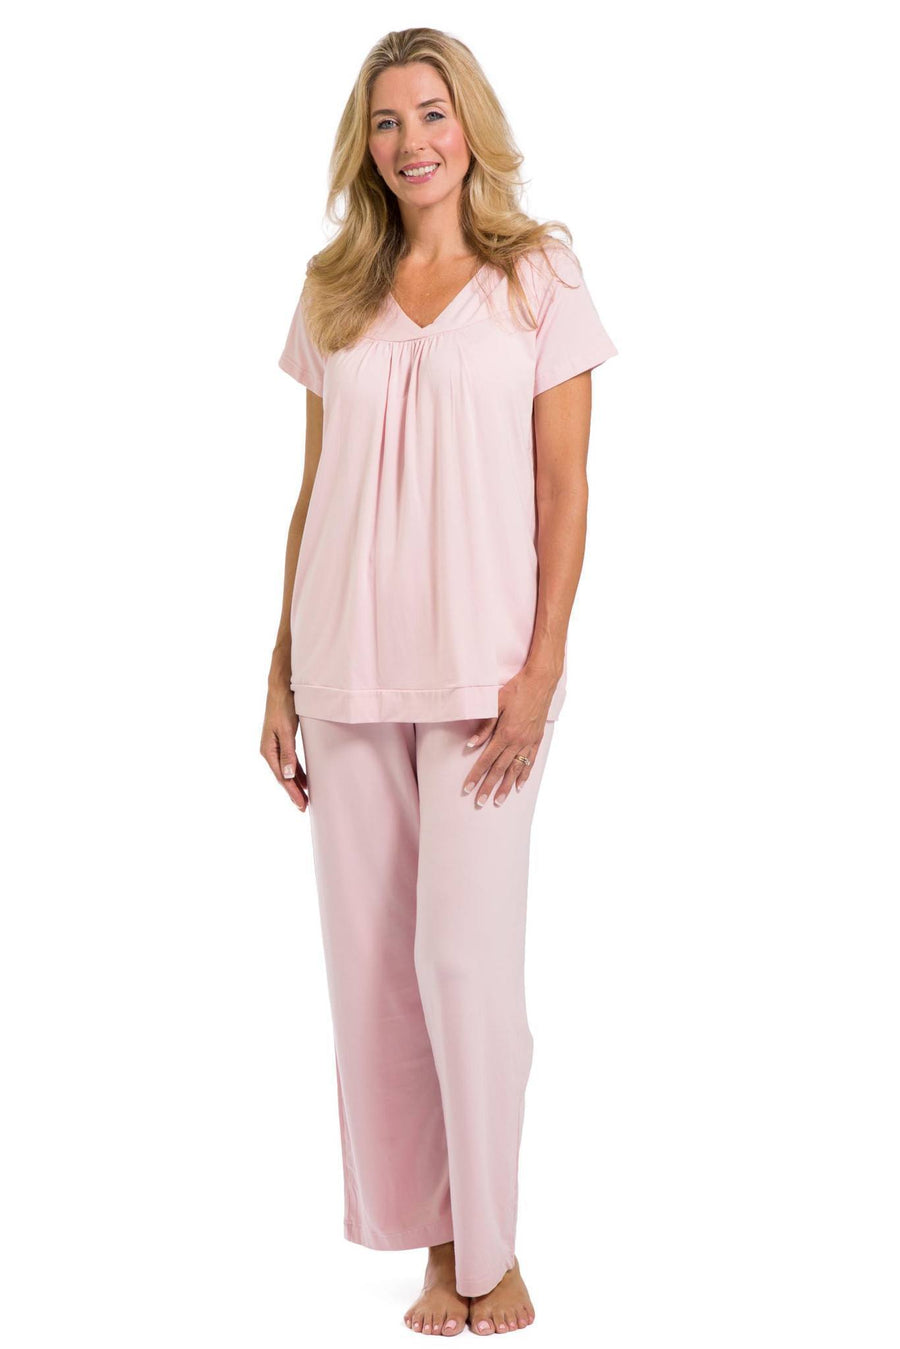 men teens a comforter soft adults fun with women or pajamas comfortable as for products pockets and costume